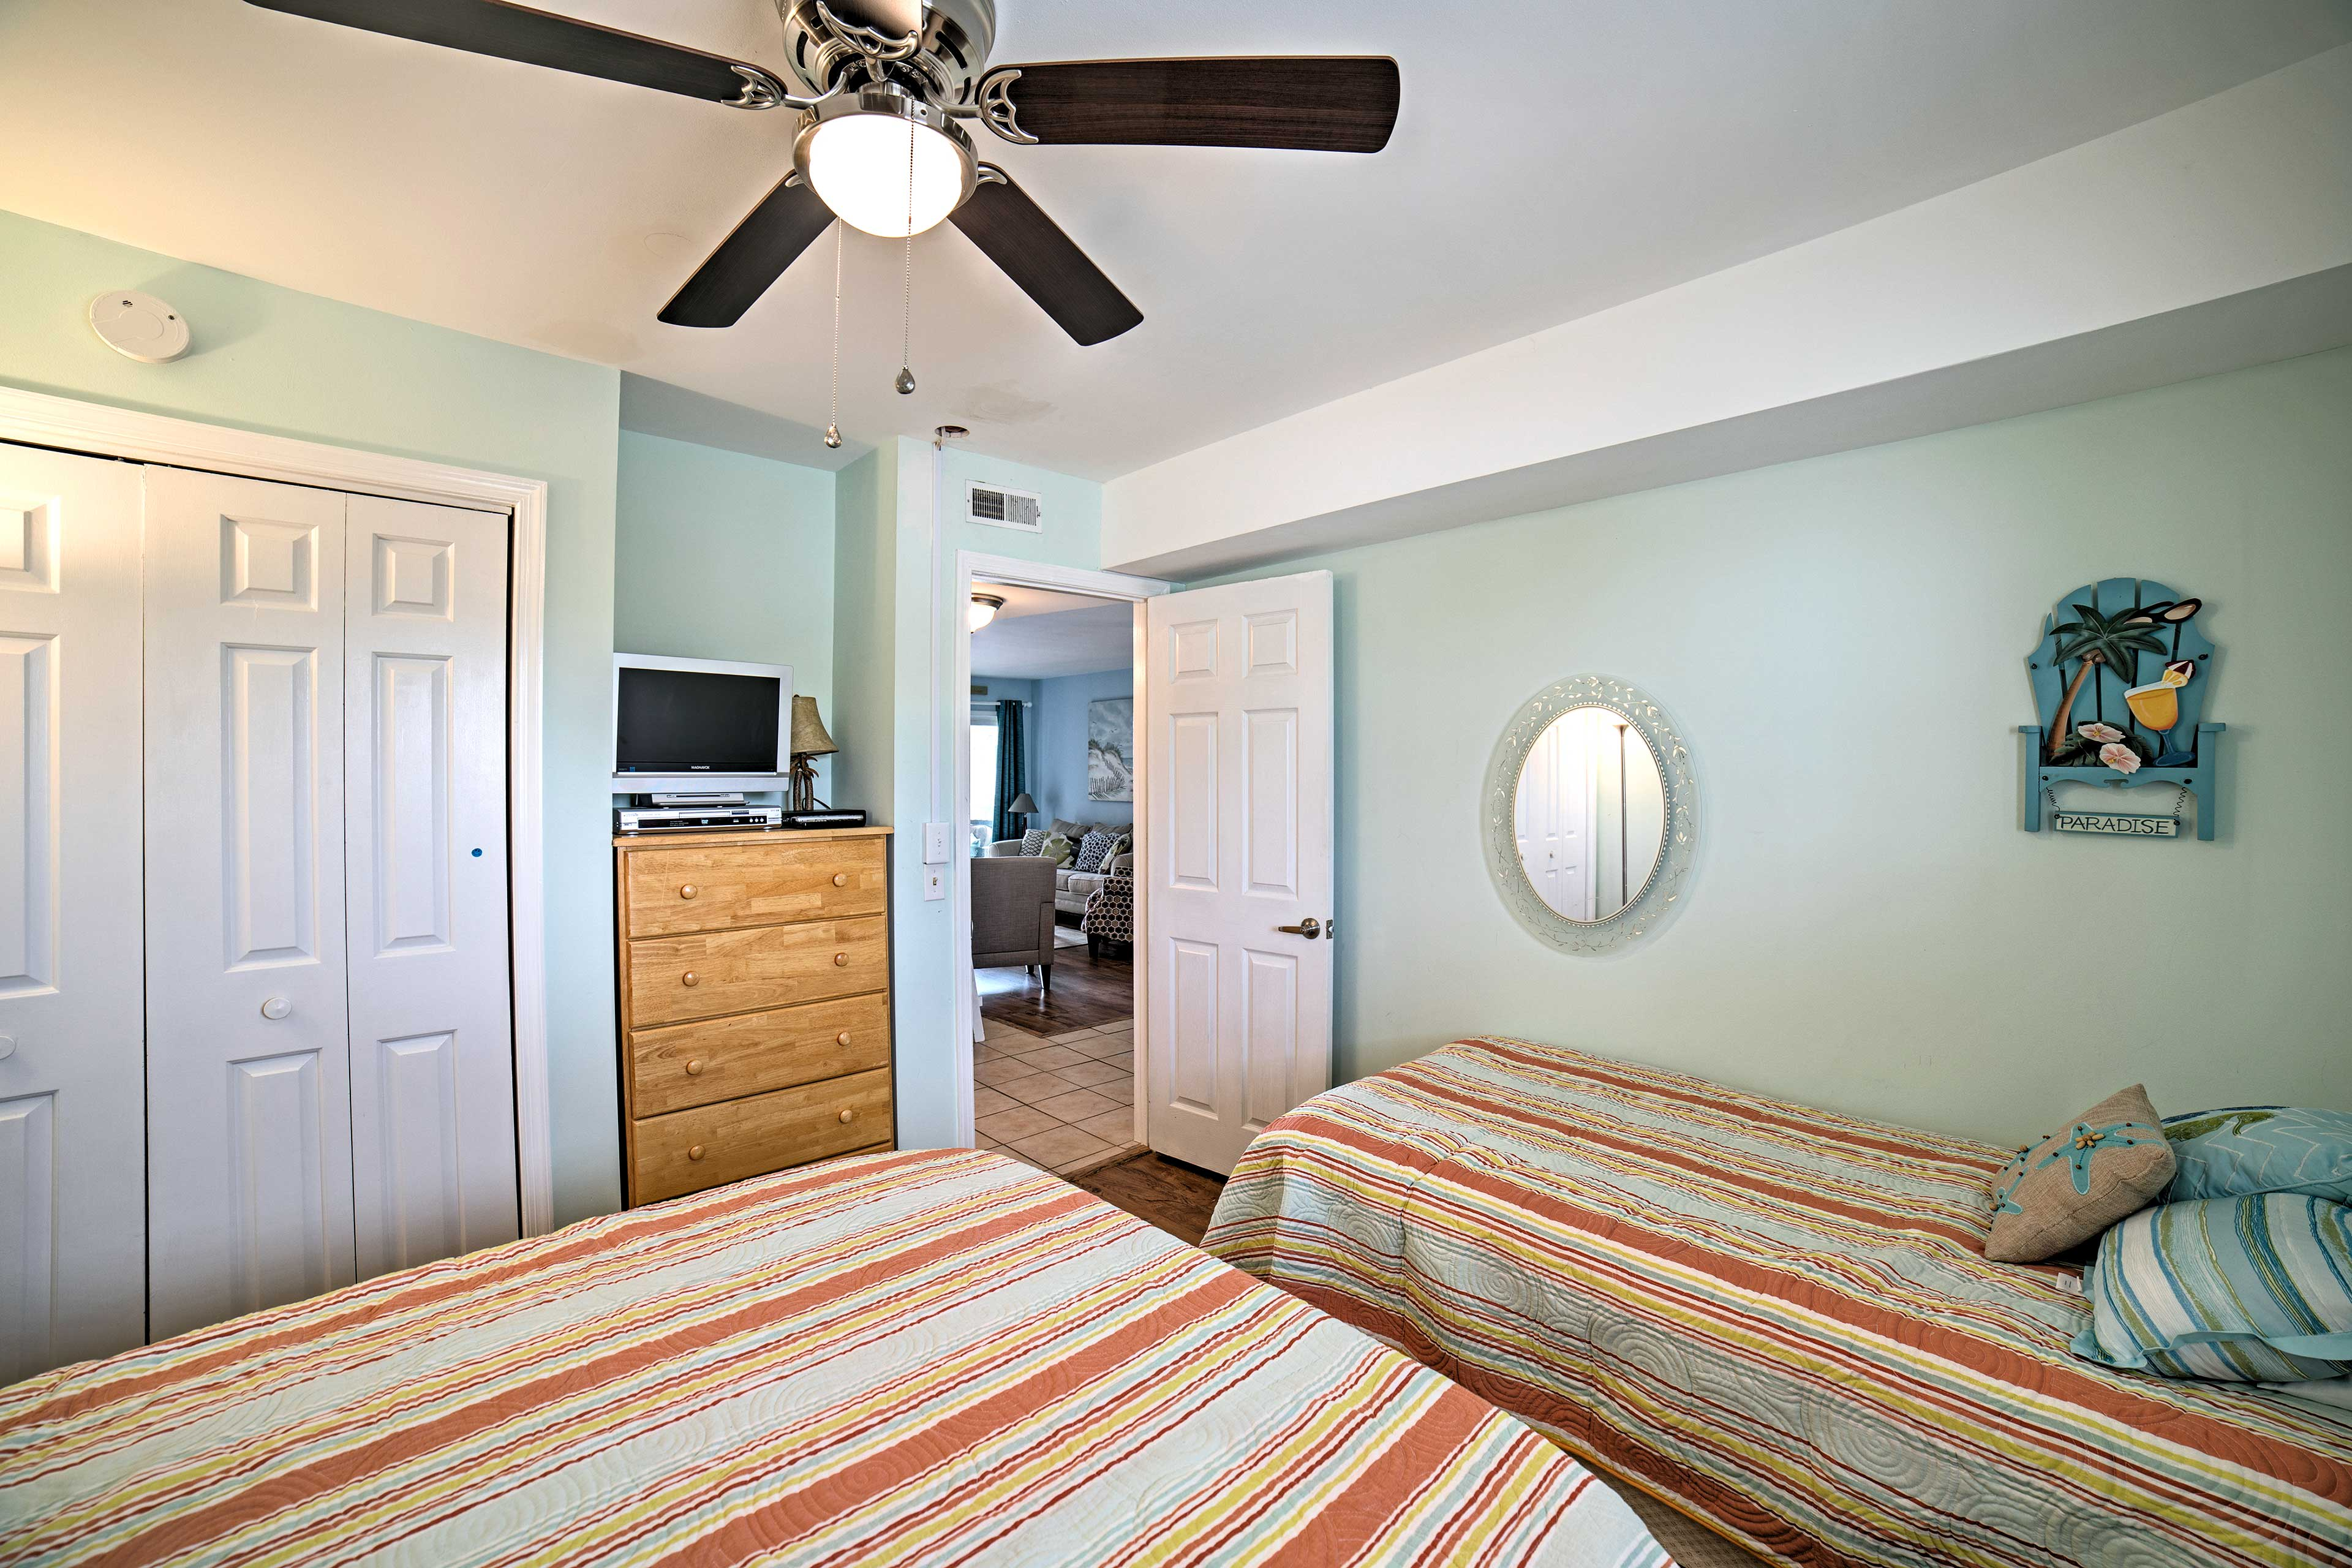 The room also boasts a flat-screen cable TV and storage space.